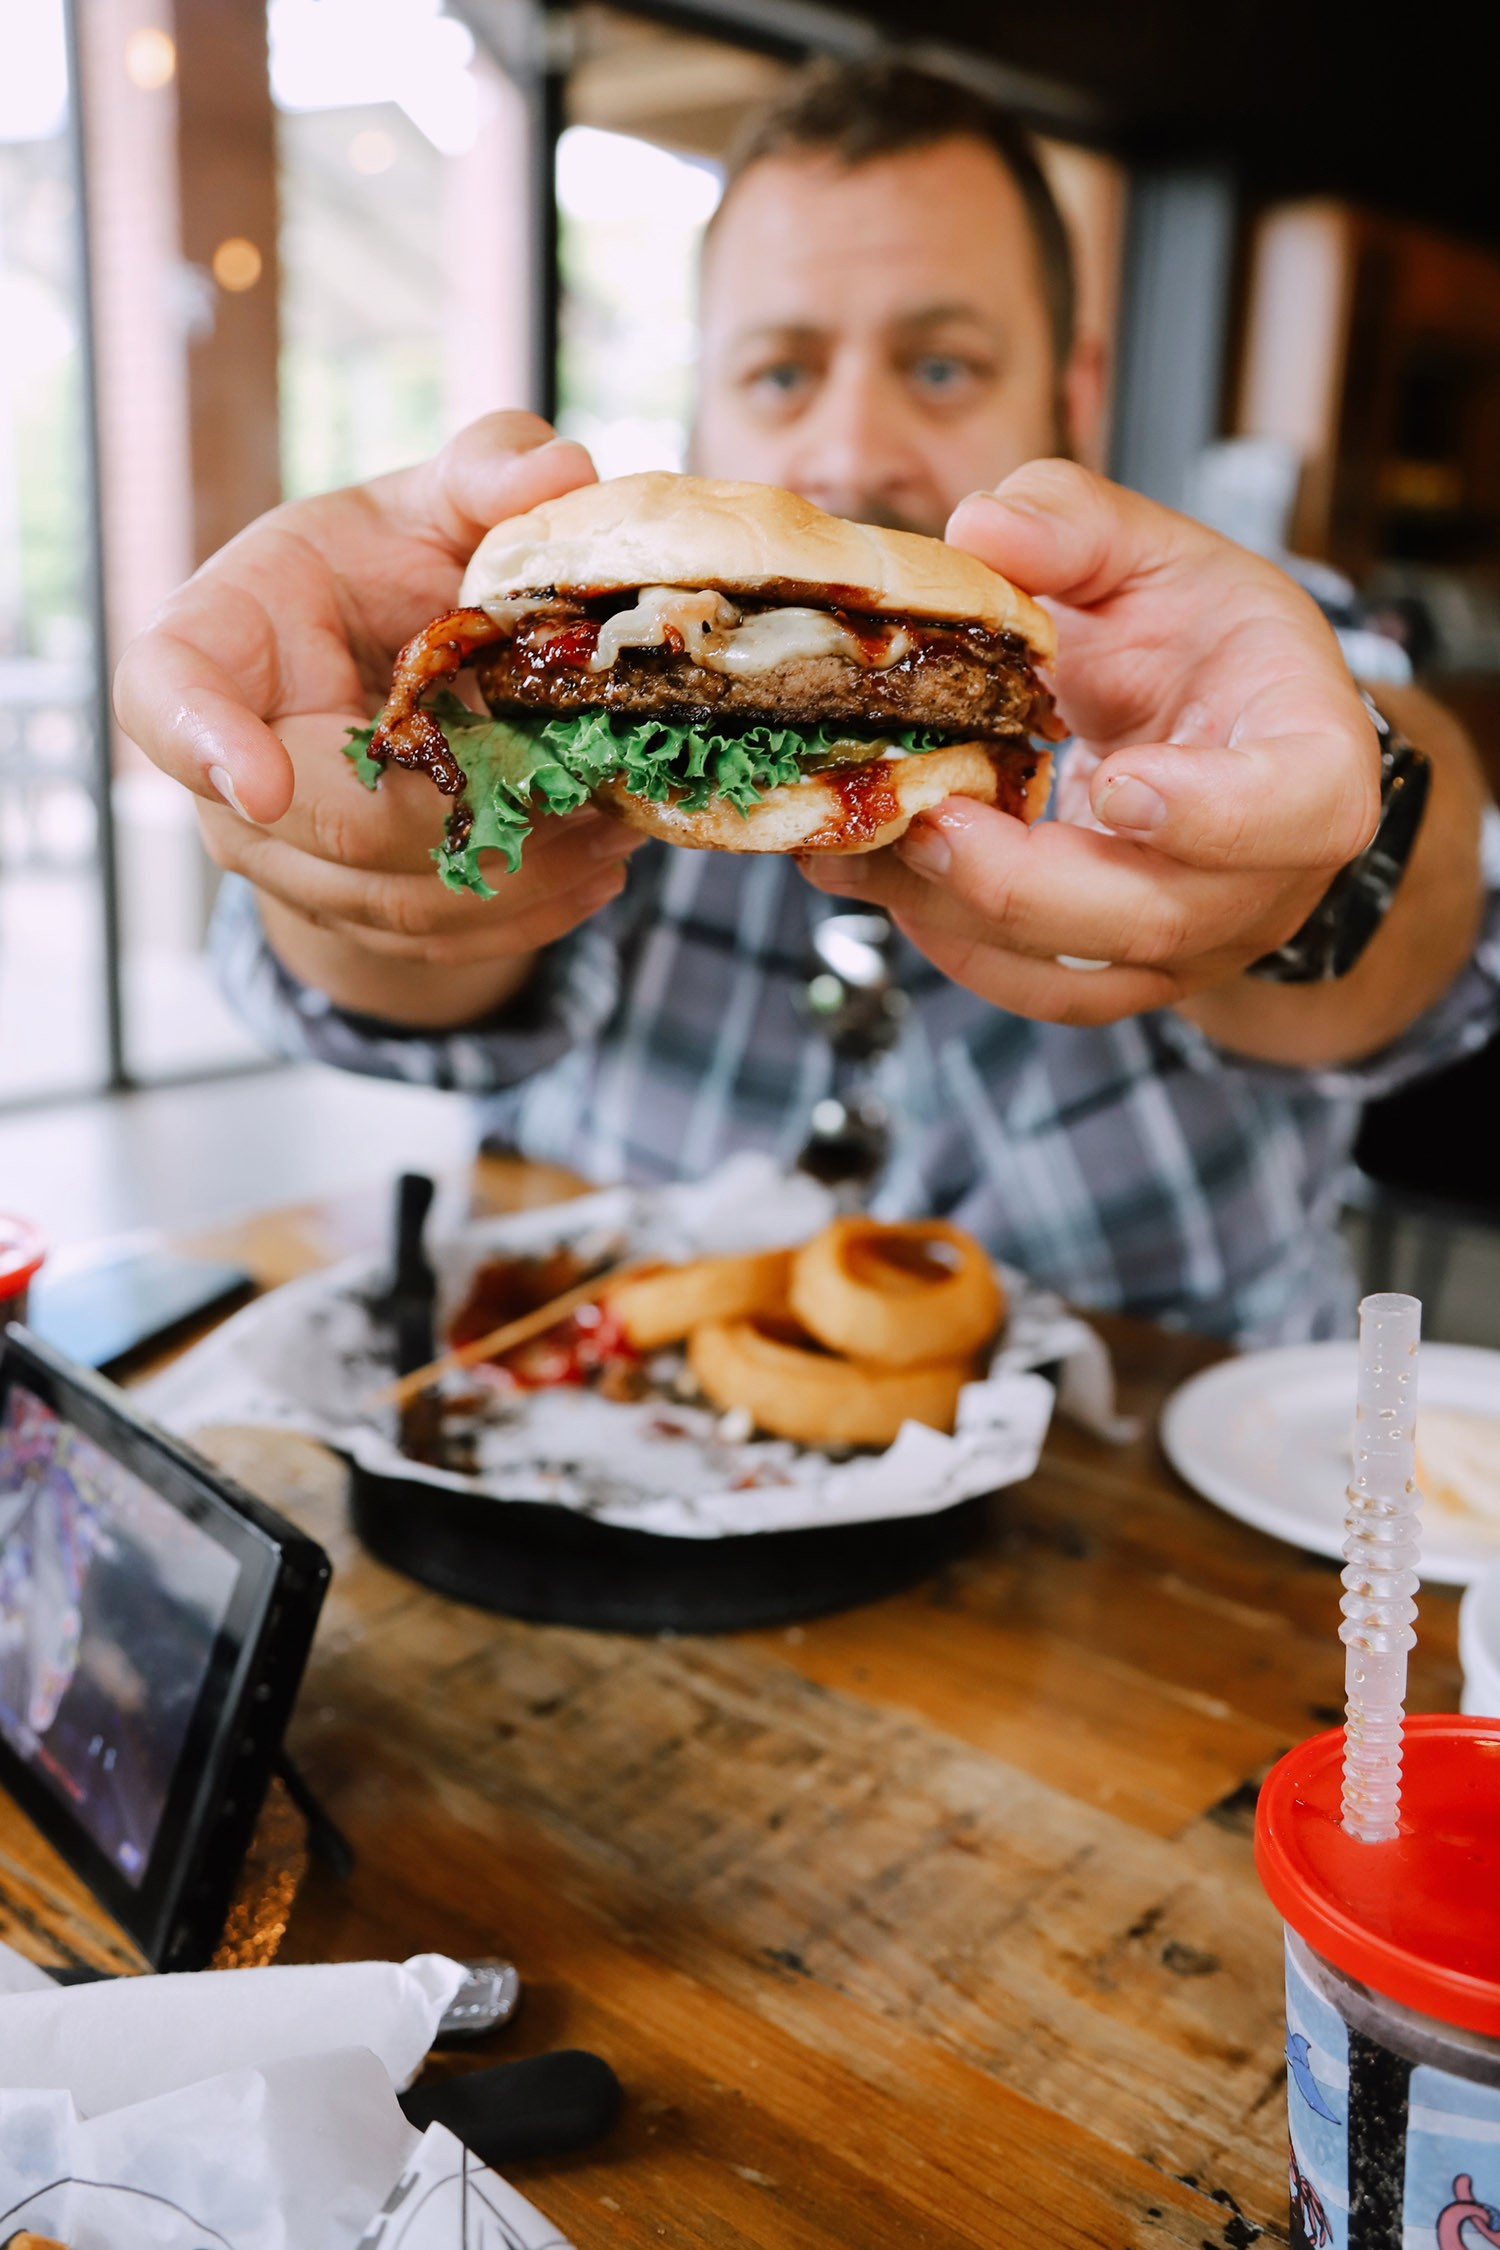 Spectacular Lake County, Florida Staycation Ideas for the Family! Bacon Brie Burger at Puddle Jumpers   Lake County by popular Florida blog, Fresh Mommy Blog: image of a man holding a brie burger at Puddle Jumpers.